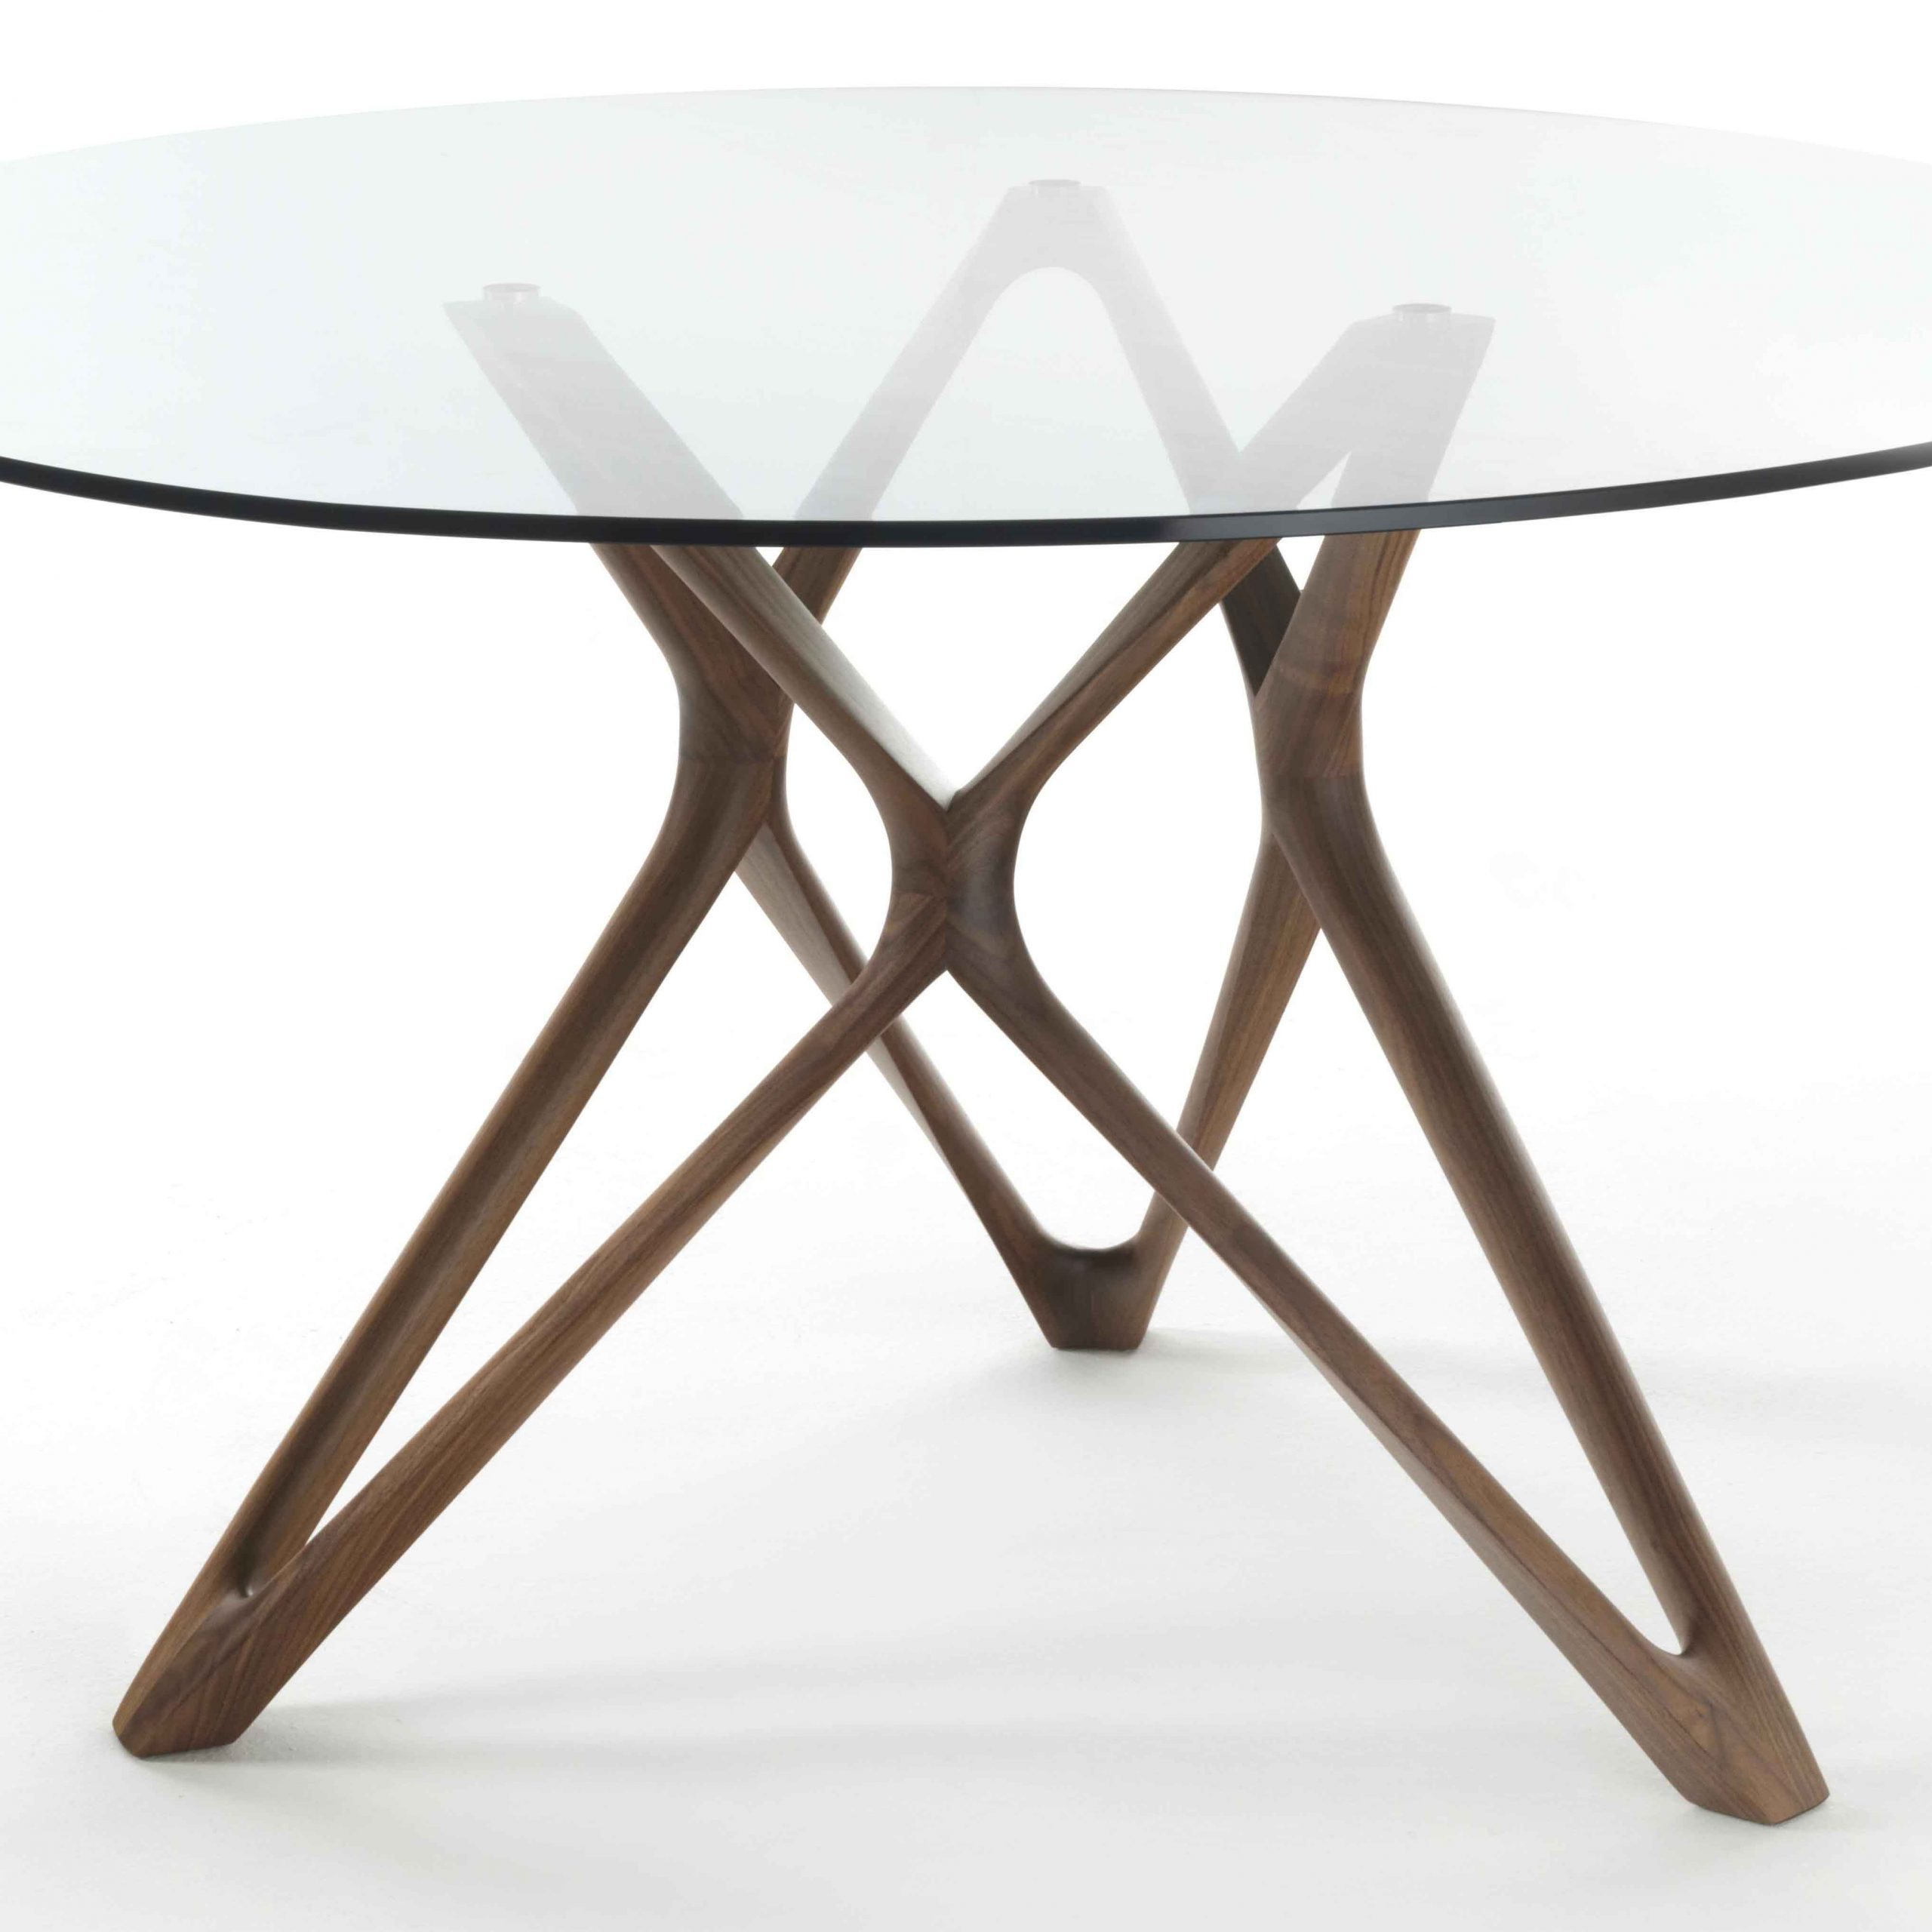 Fashionable Circe Dining Table With Glass Topporada In Dining Tables Intended For Round Dining Tables With Glass Top (View 16 of 25)